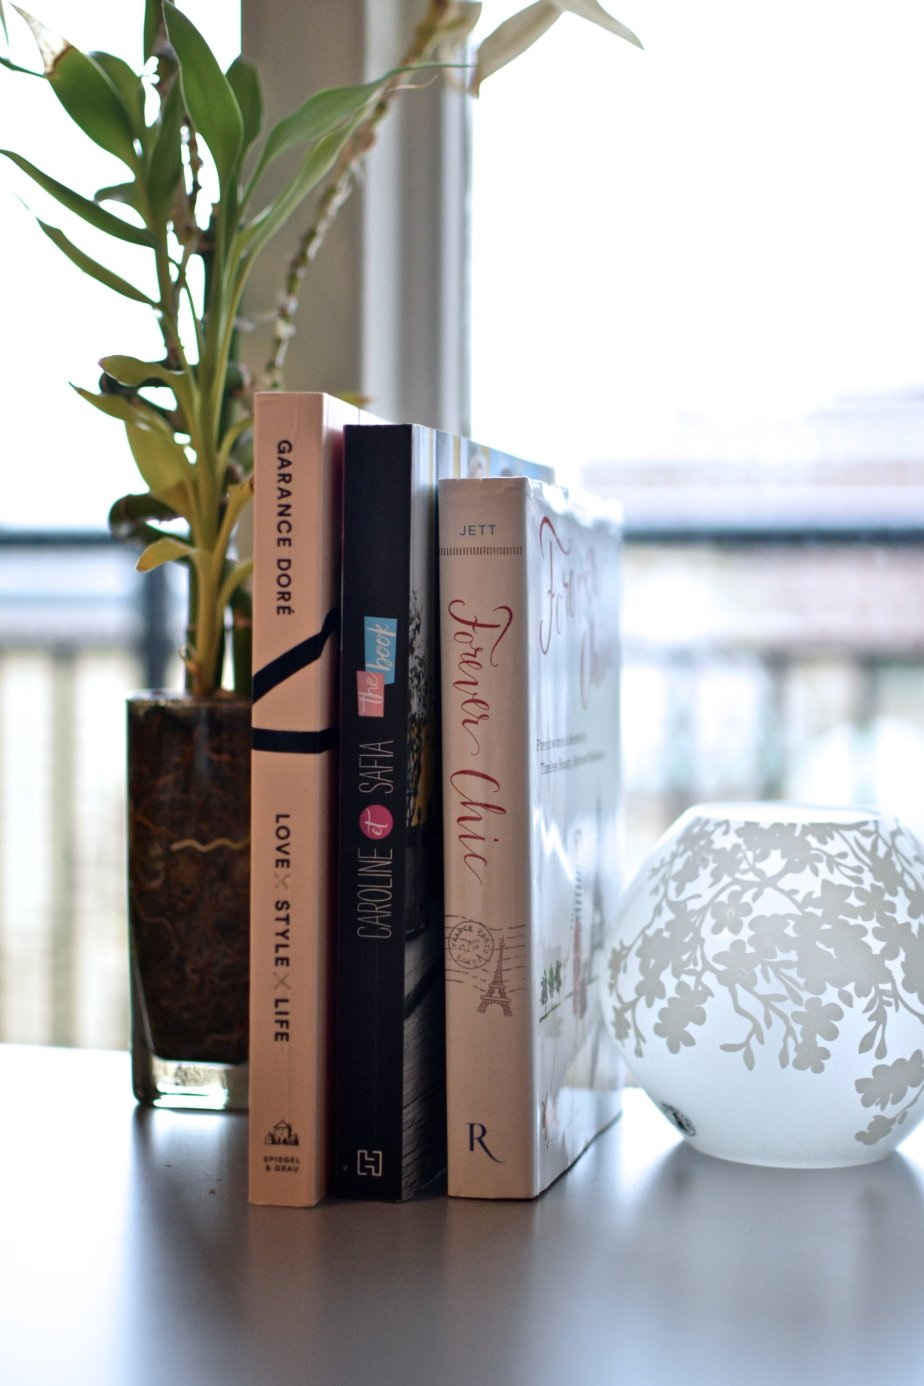 The 3 Best Books I've Read ThisYear